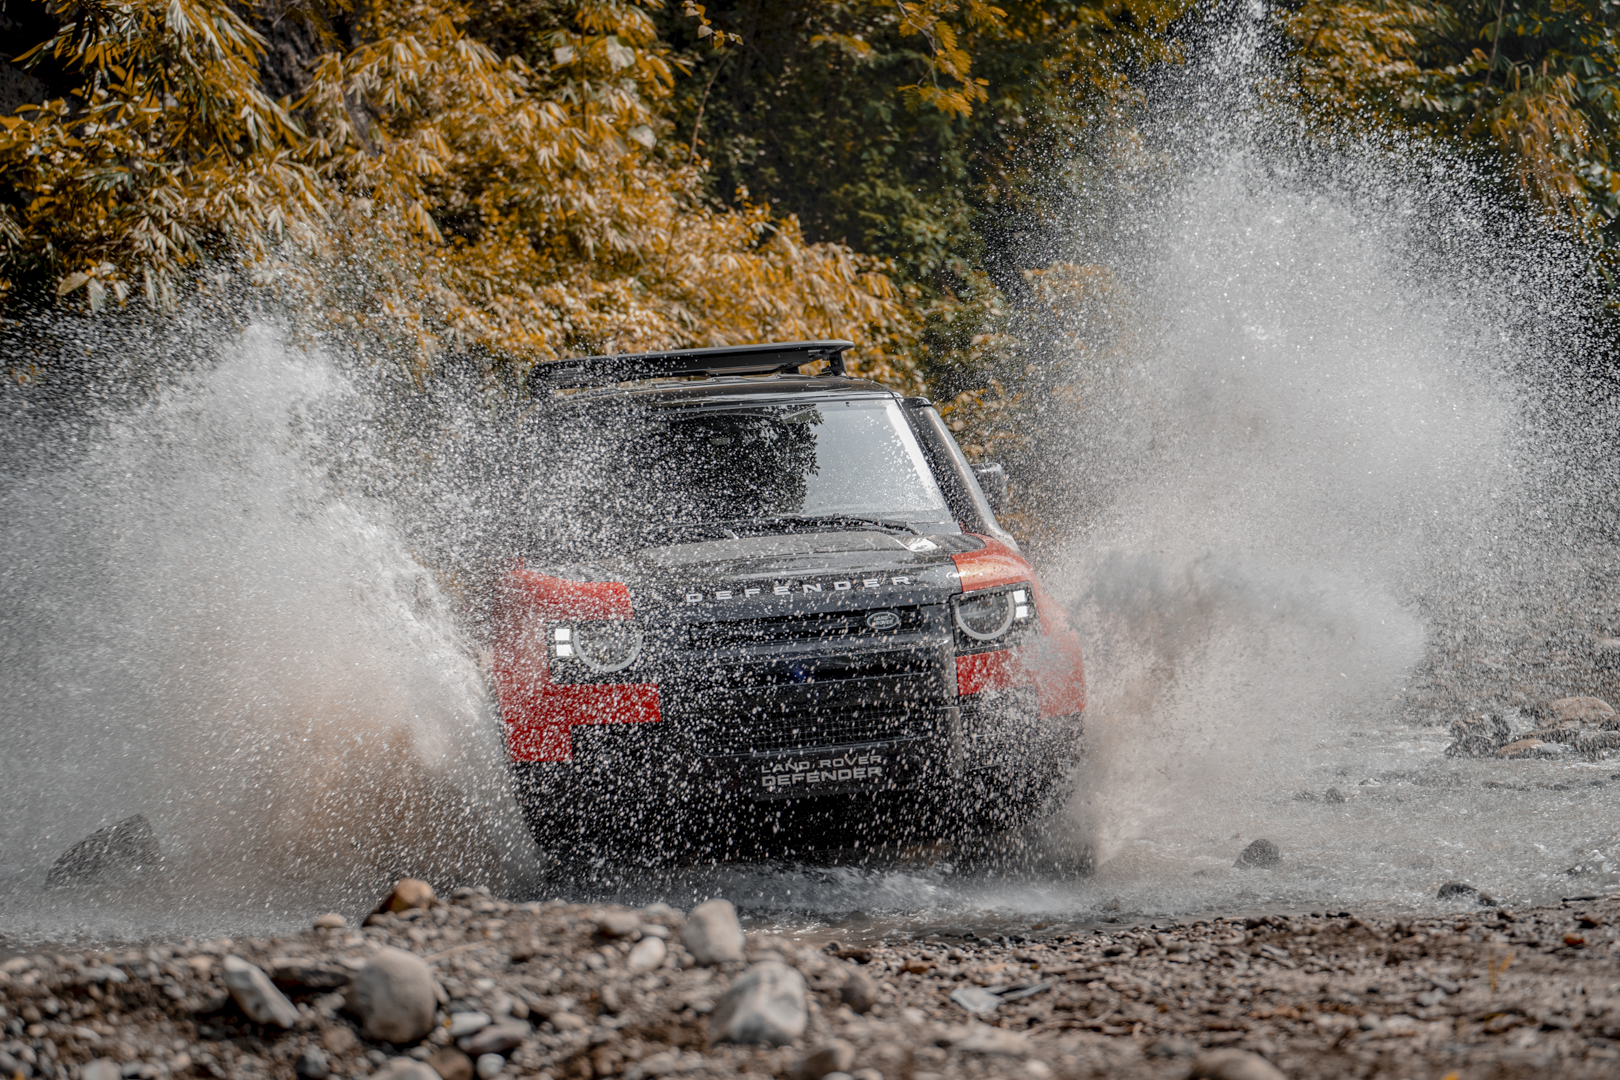 The Iconic Defender 90 ready to conquer Philippine Terrains